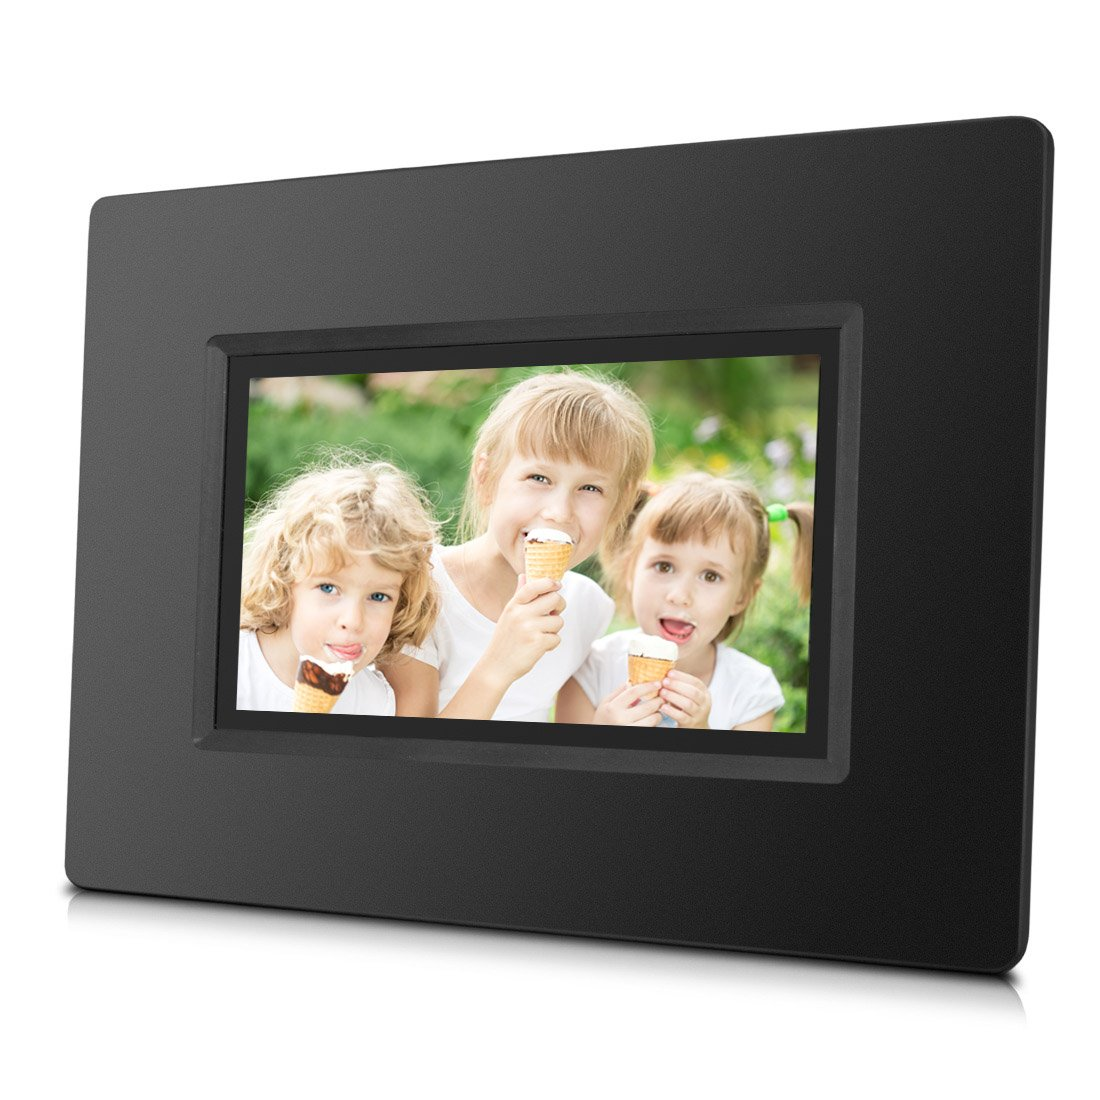 7 inch WiFi Cloud Digital Photo Frame with Touch Screen, Free Cloud Storage & 4GB Internal Memory, Portable, Remote Photo Sharing